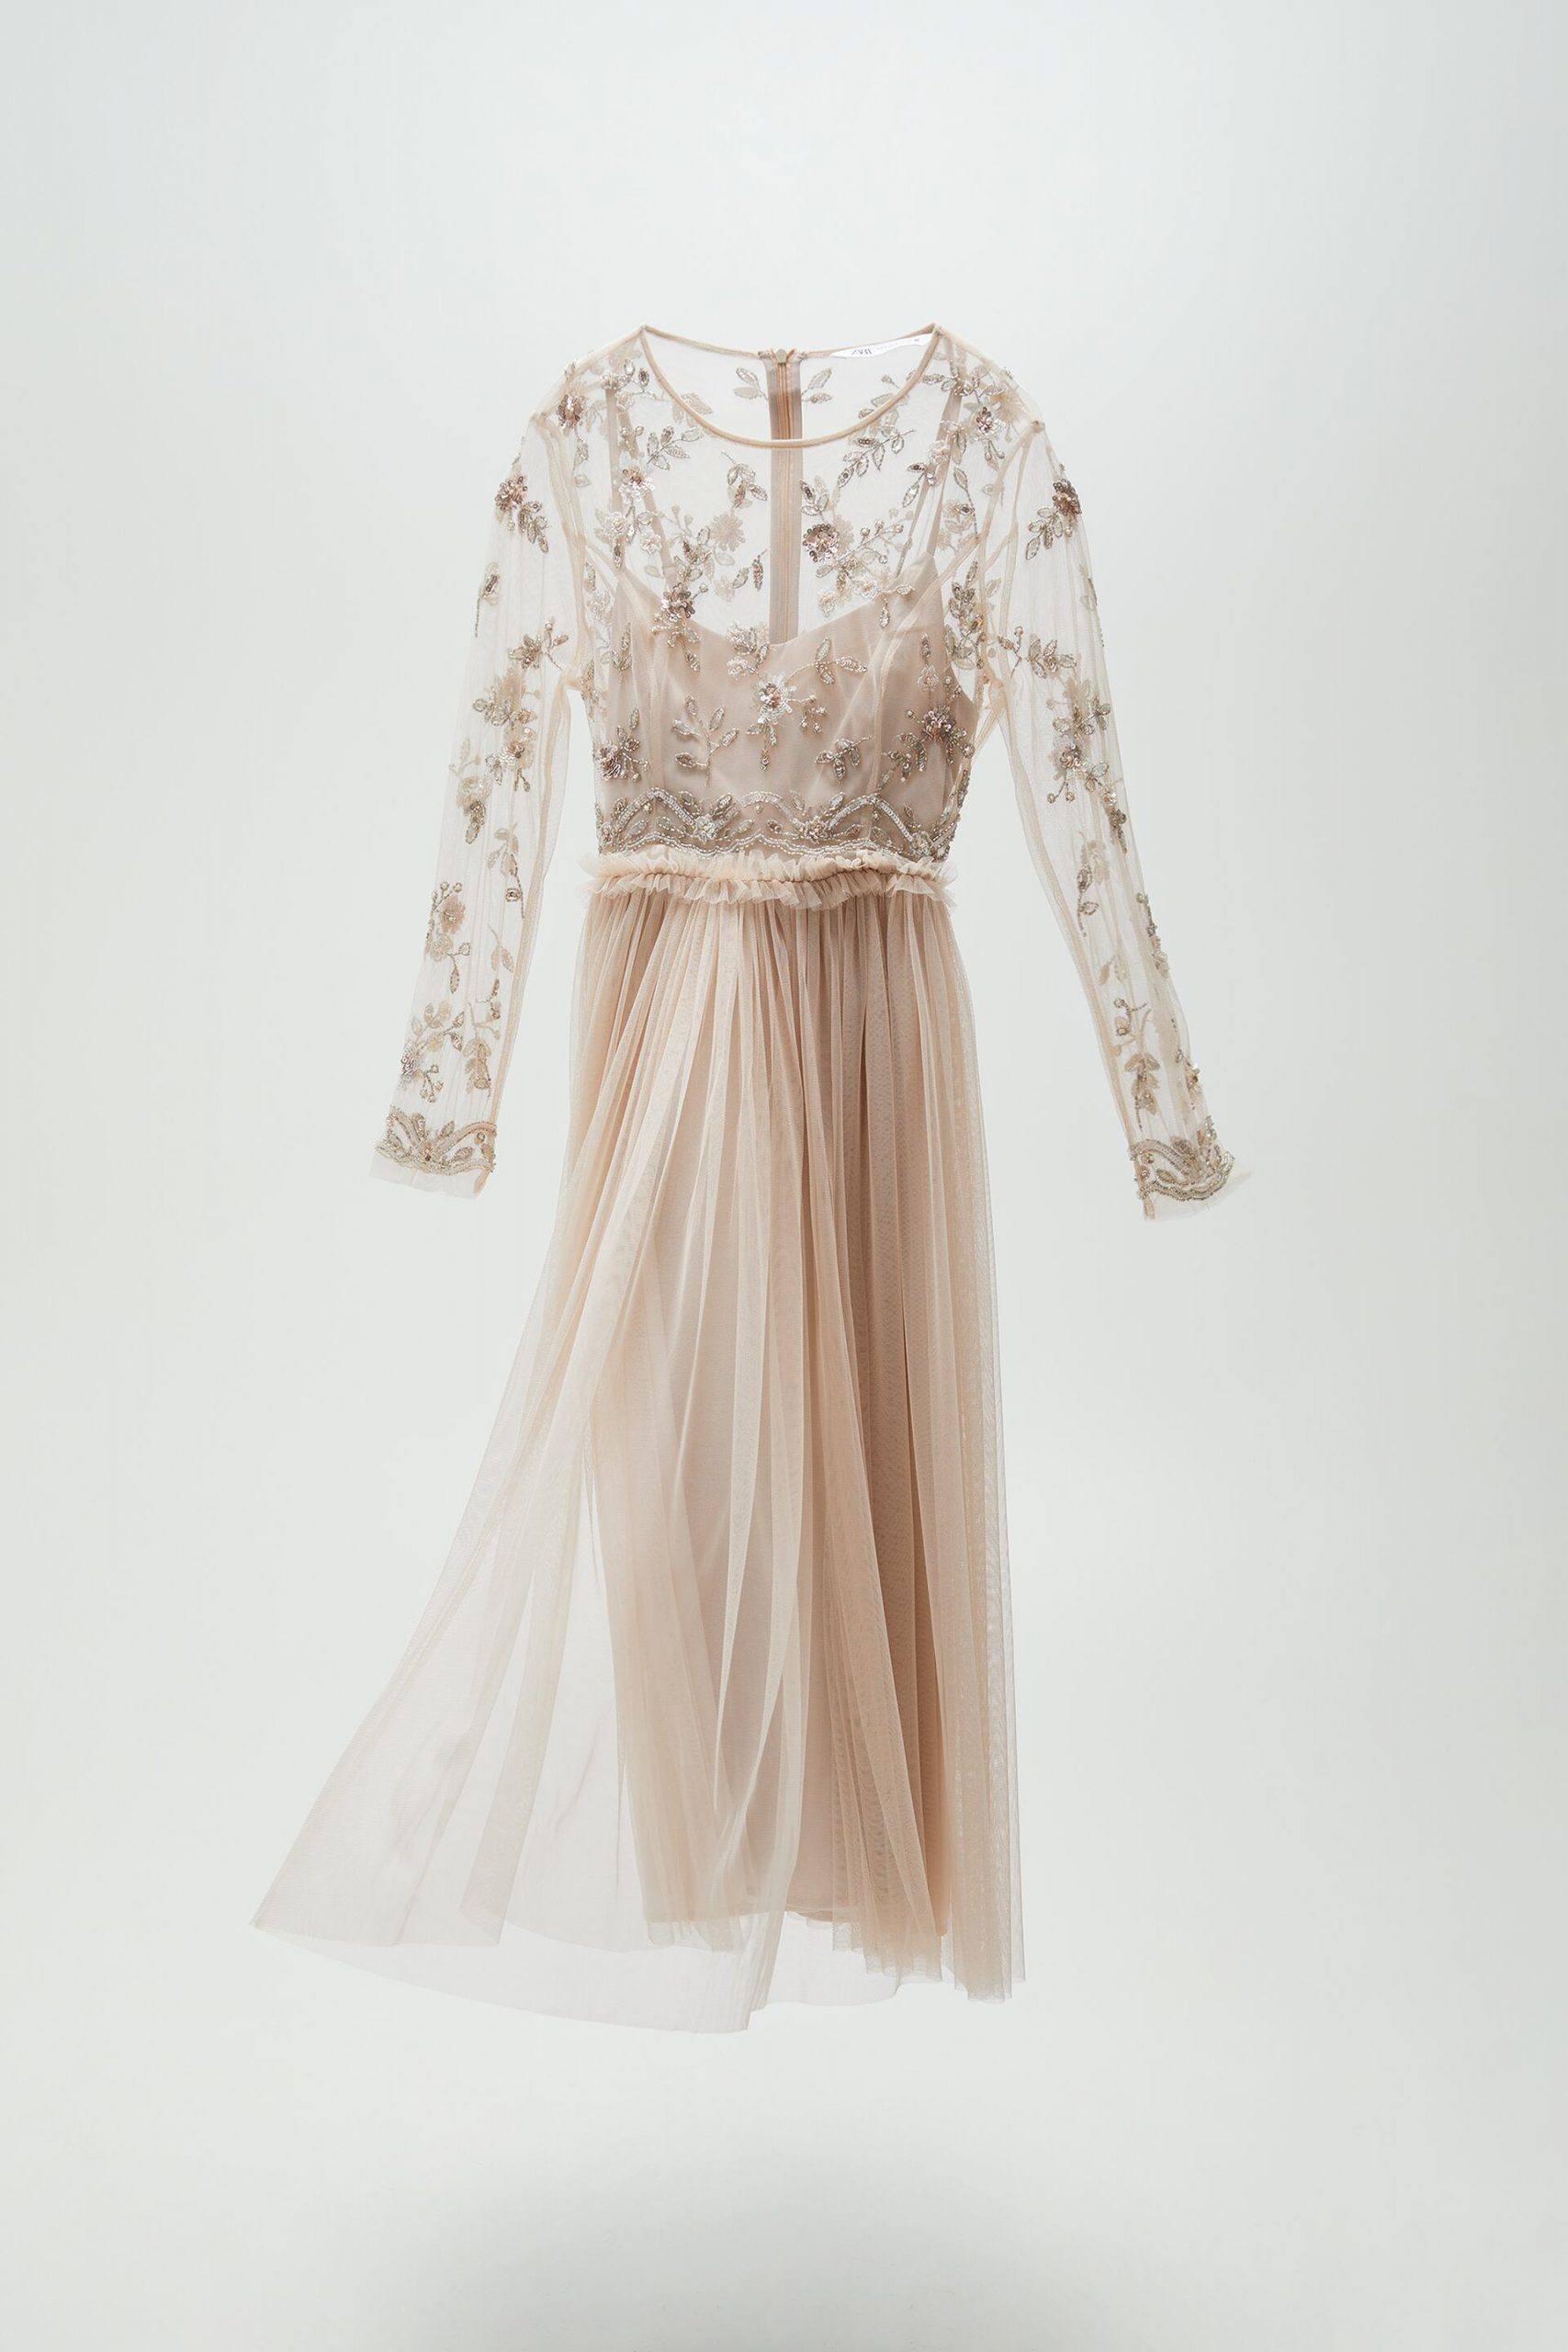 Light pink full-length dress with tulle skirt and beaded top with full-length sleeves